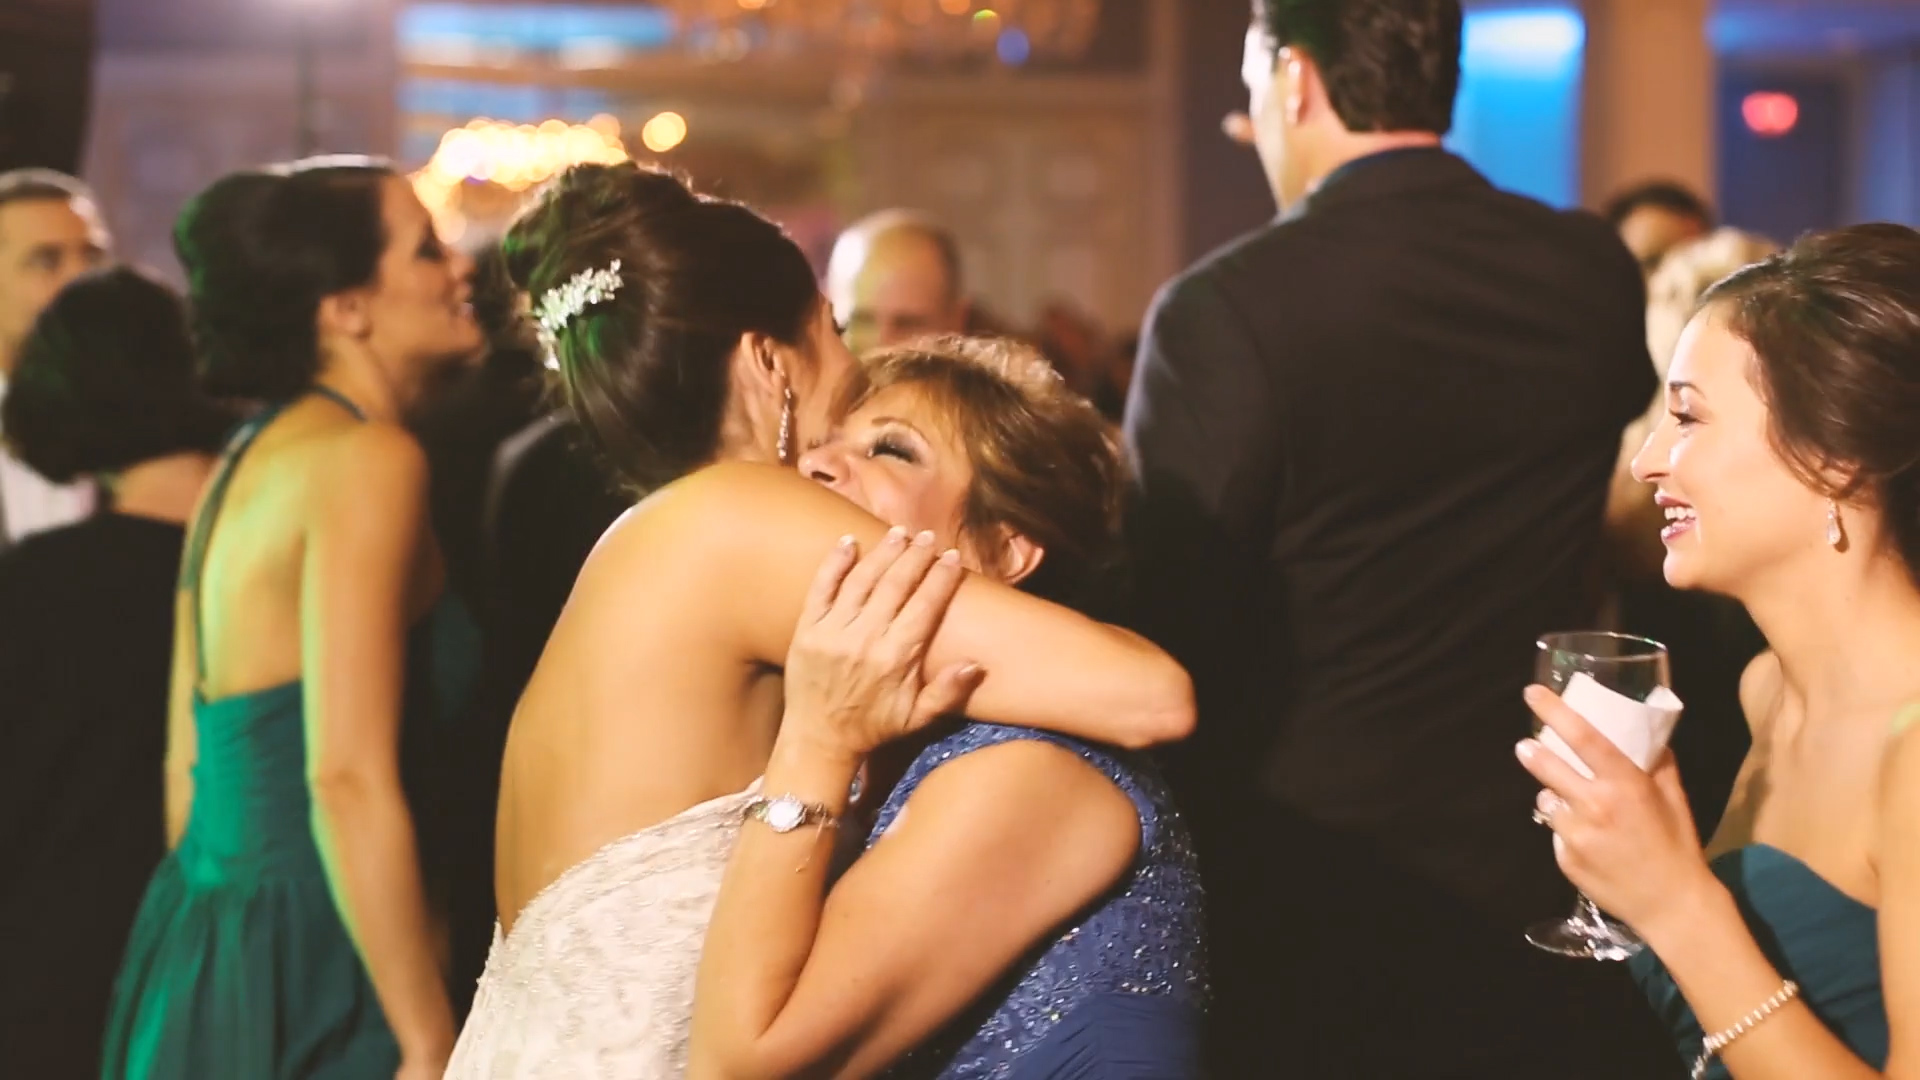 Sweet, emotional moments in the middle of the party are the best!